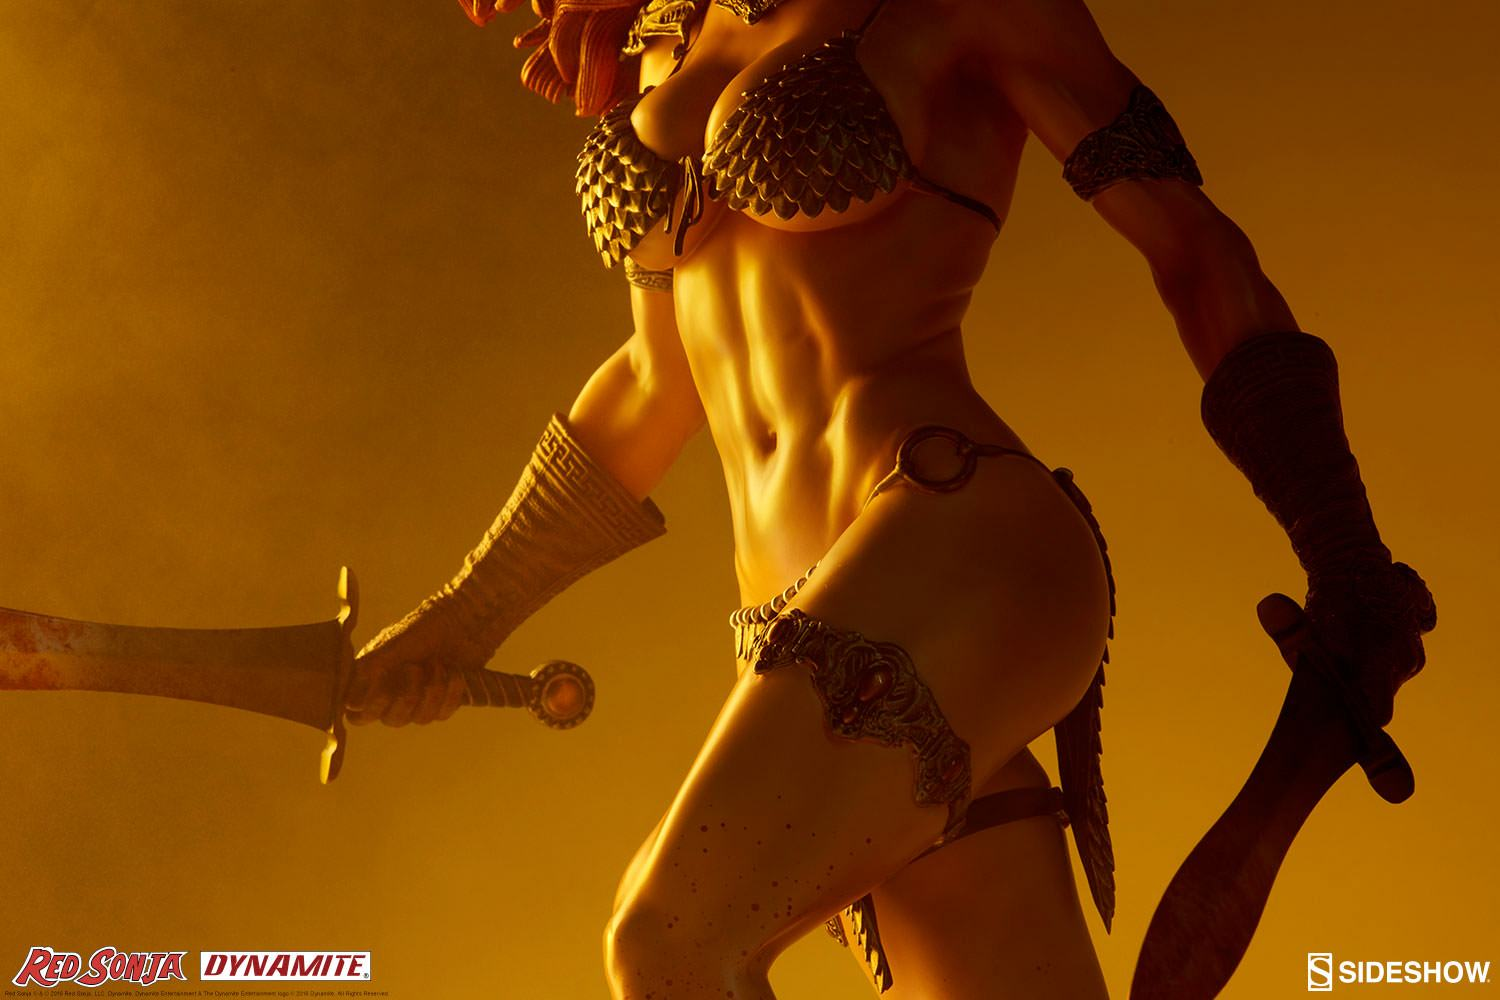 red-sonja-she-devil-with-a-sword-premium-format-figure-14